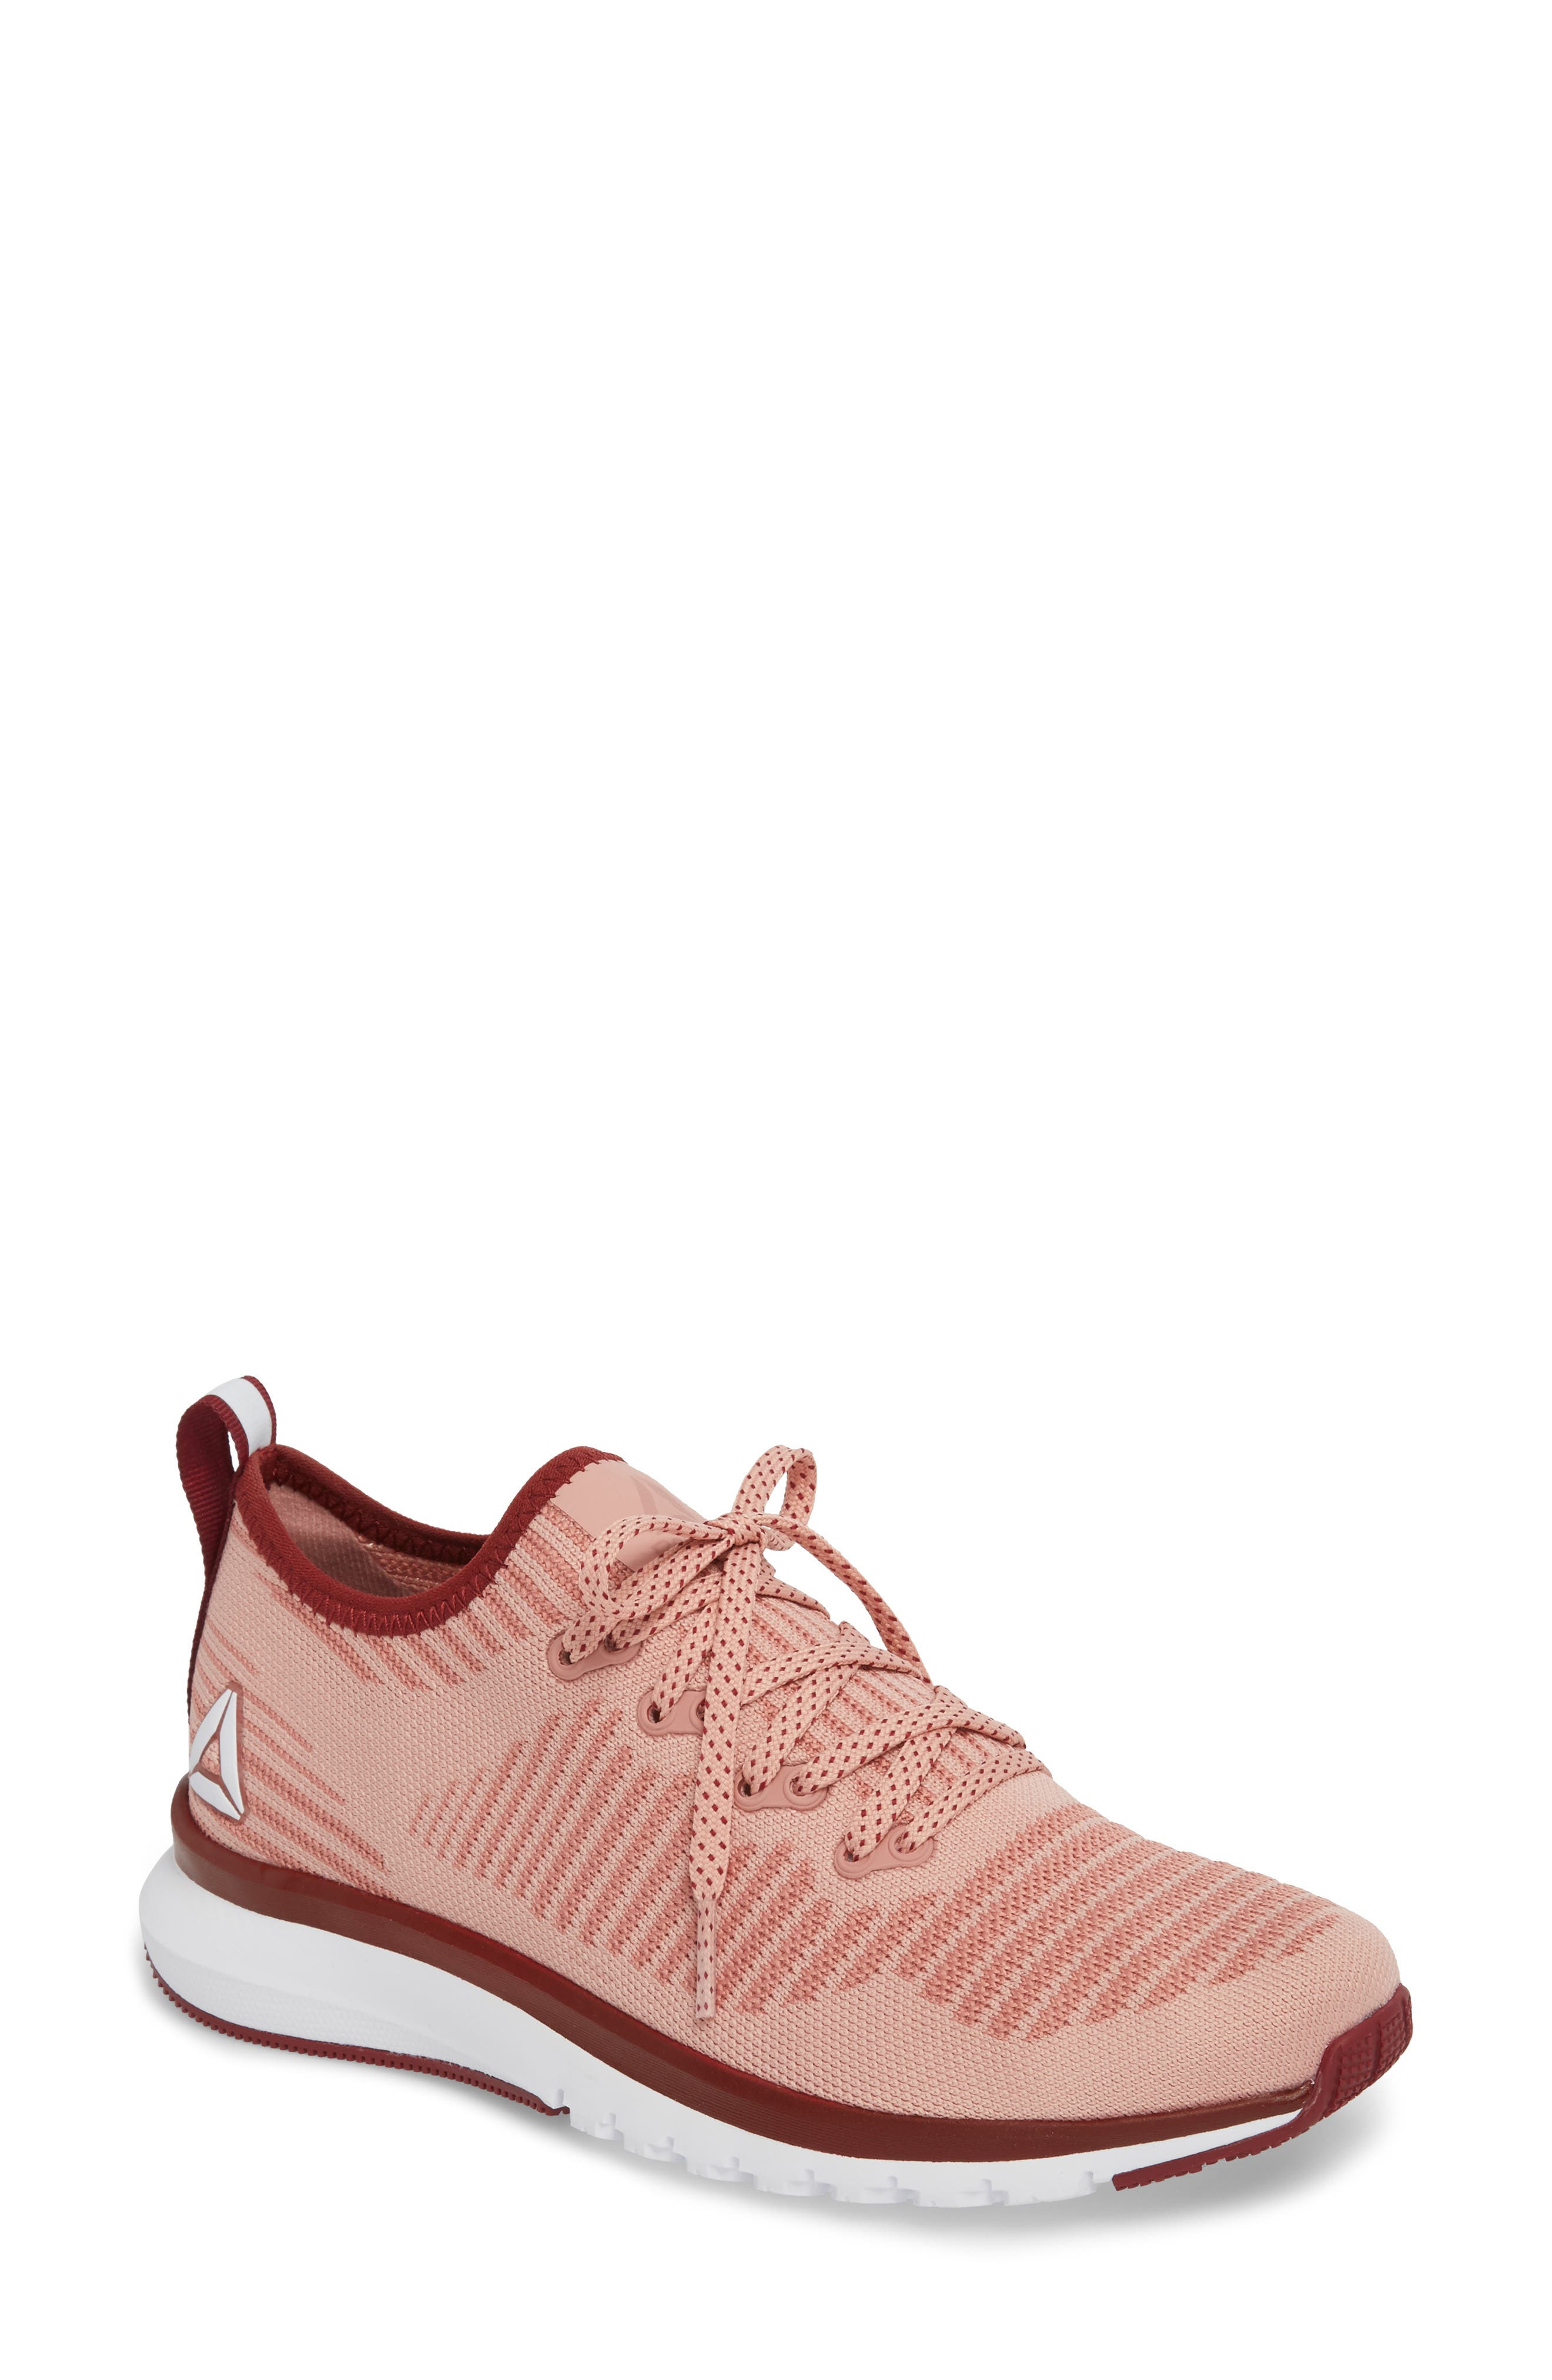 Reebok Print Run Smooth Ultra Knit Running Shoe (Women)